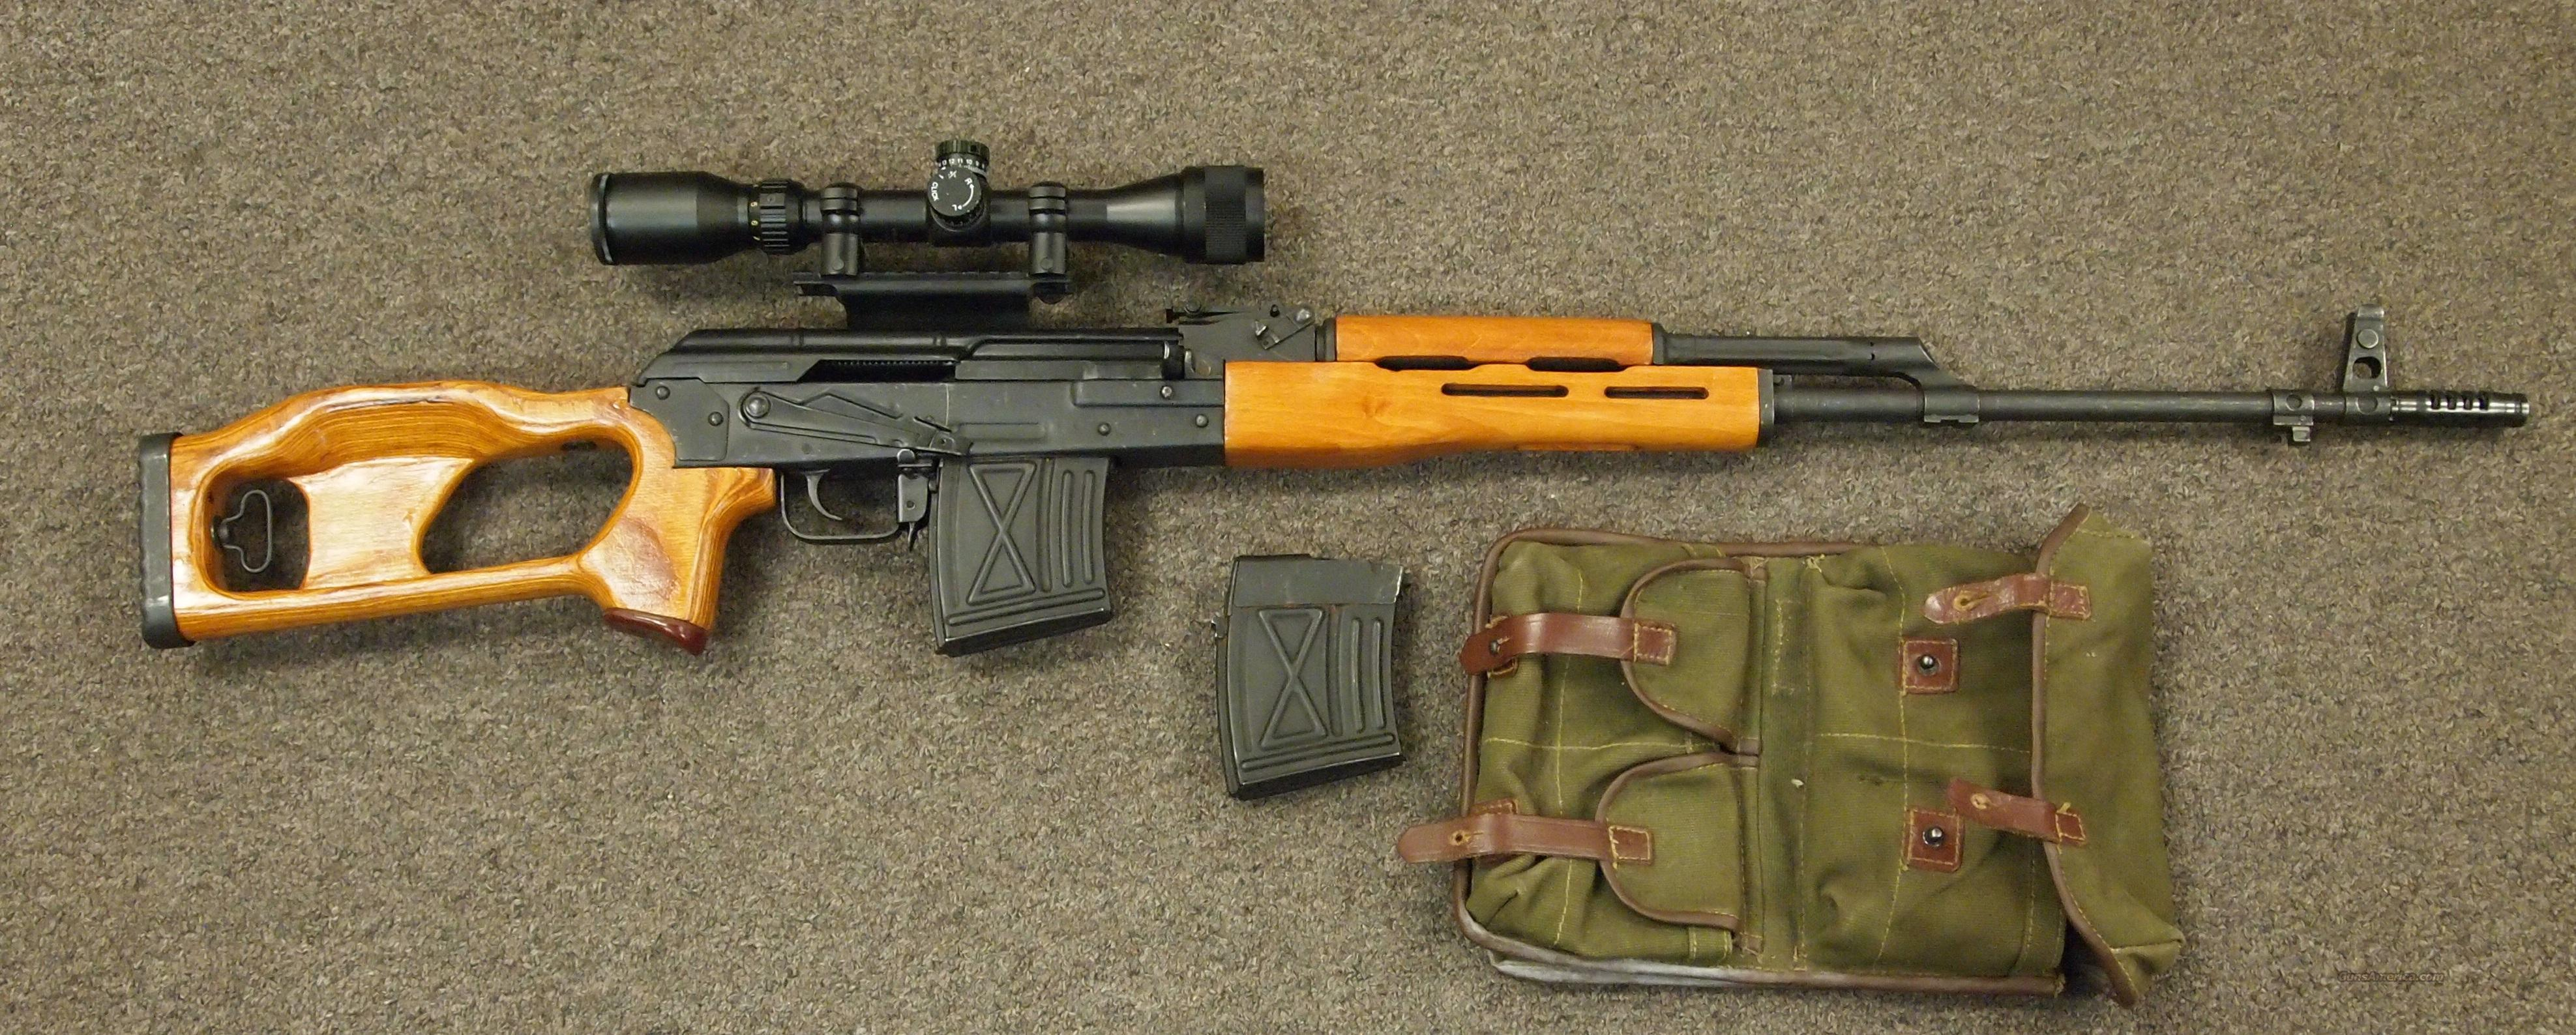 Romanian PSL-54C Dragunov 7.62X54R  Guns > Rifles > Century International Arms - Rifles > Rifles